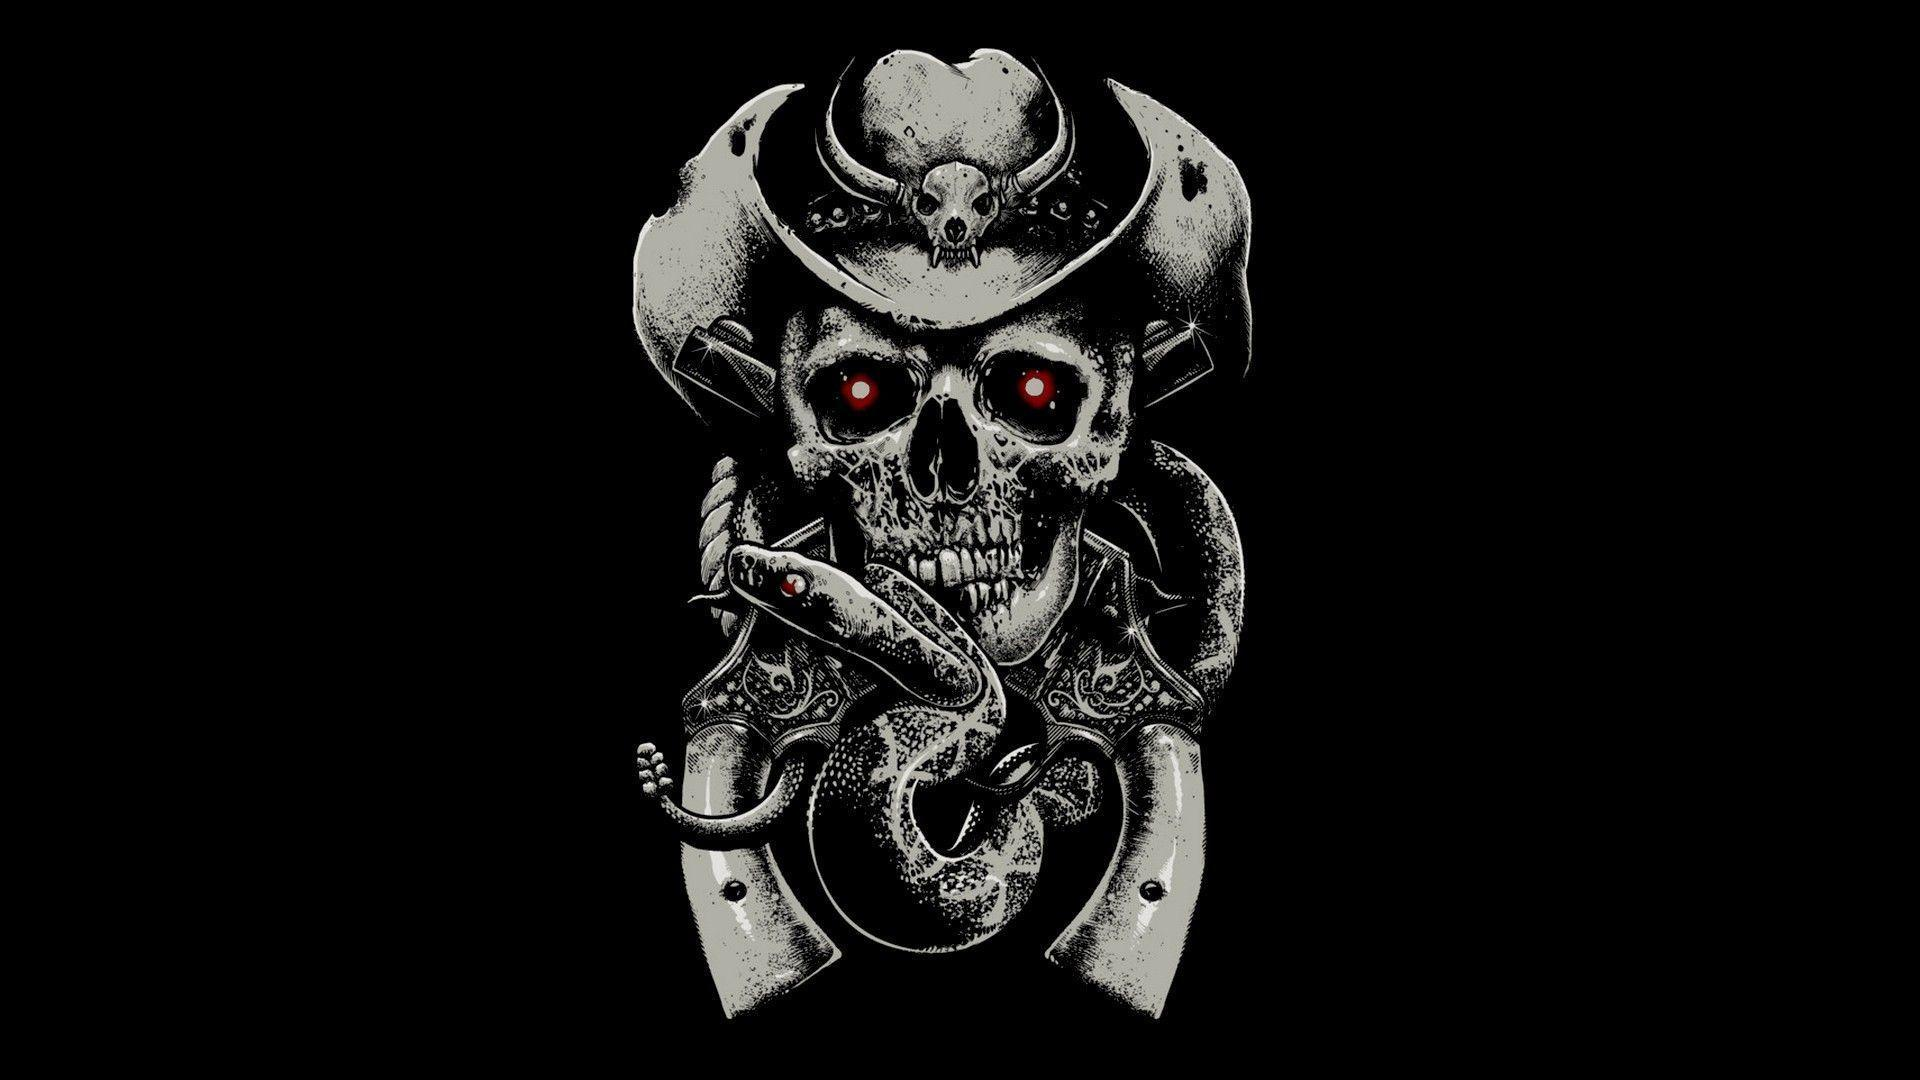 cool rock skull live wallpaper - photo #44